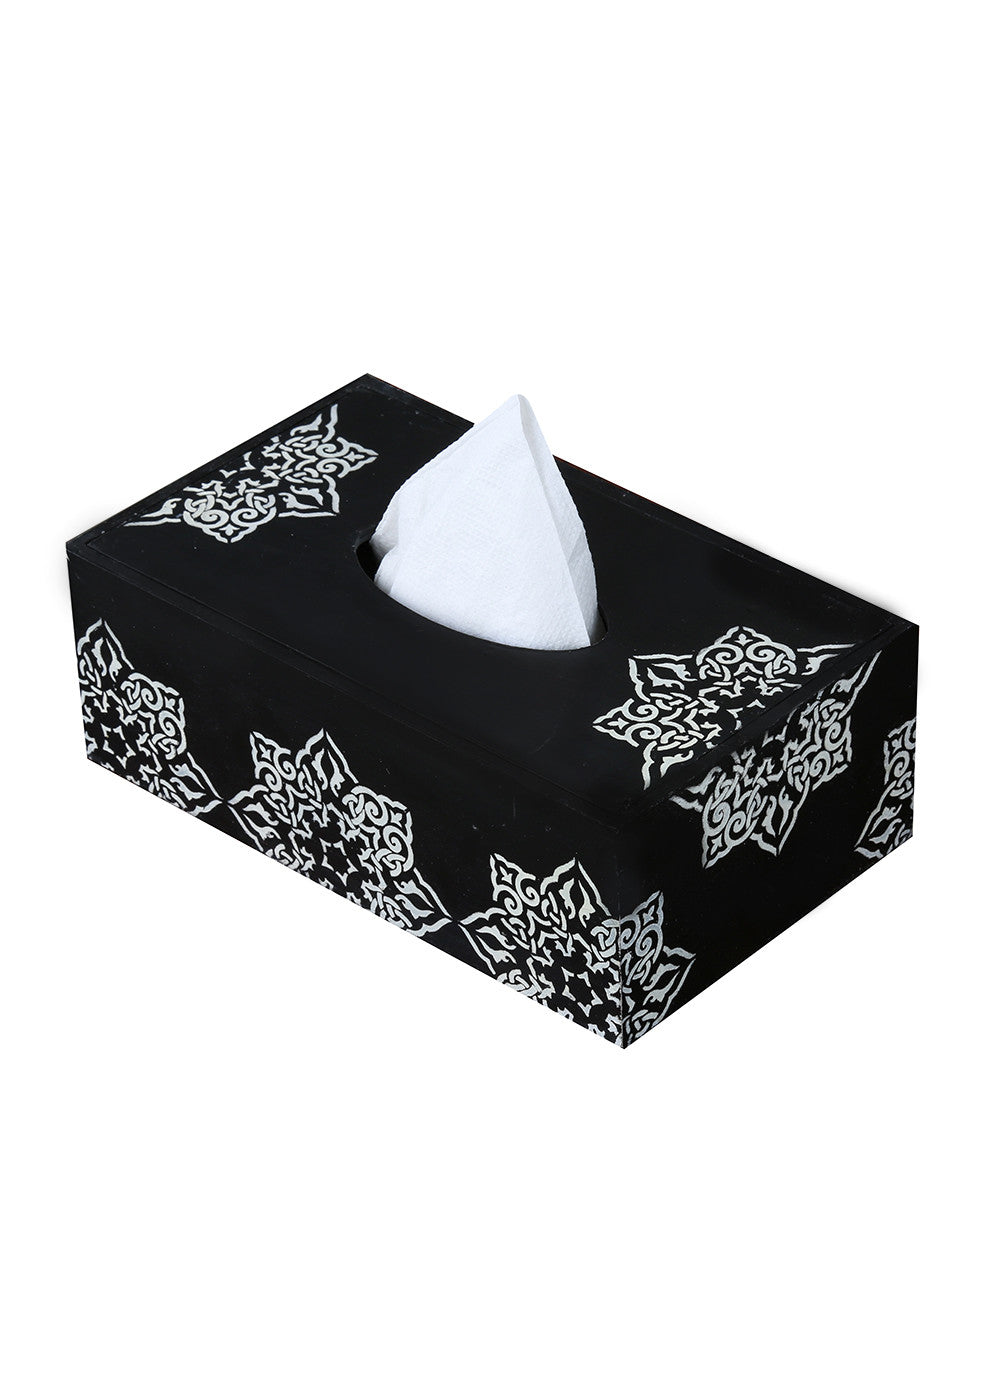 Hand-painted Greying Motif Tissue Box Holder - RANGRAGE